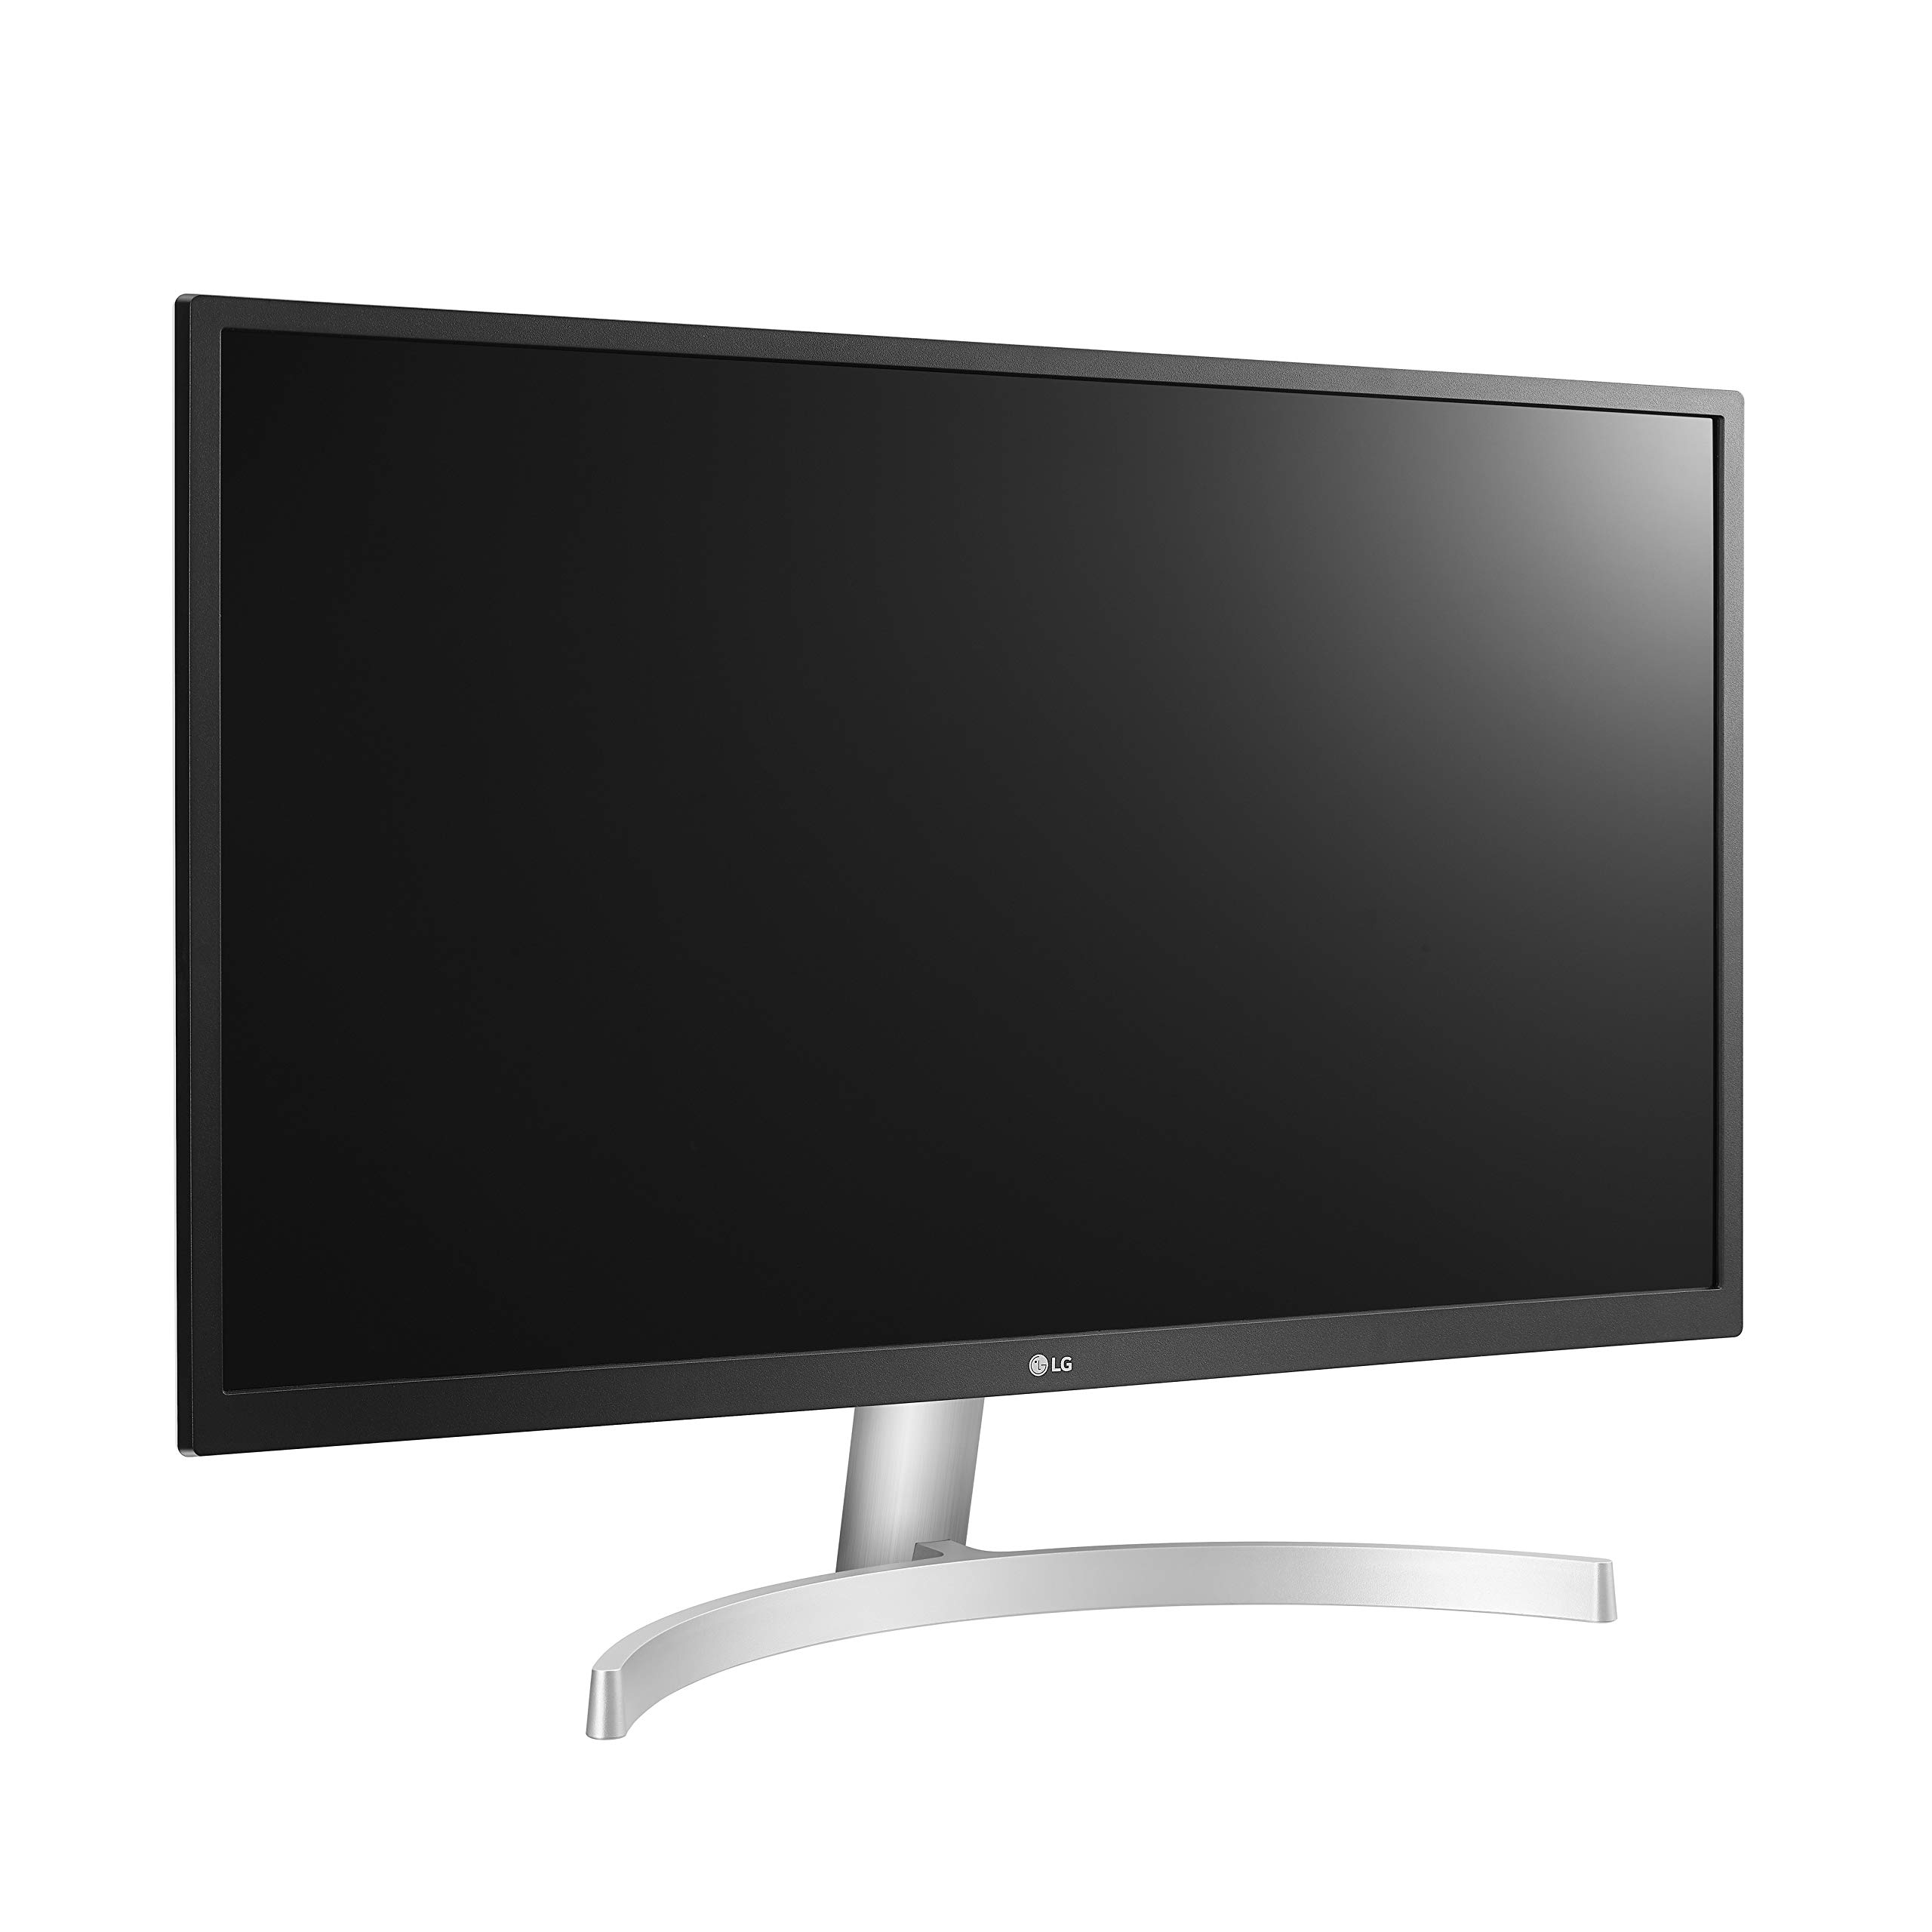 LG 27UL500-W 27-Inch UHD (3840 x 2160) IPS Monitor with Radeon Freesync Technology and HDR10, White by LG (Image #3)